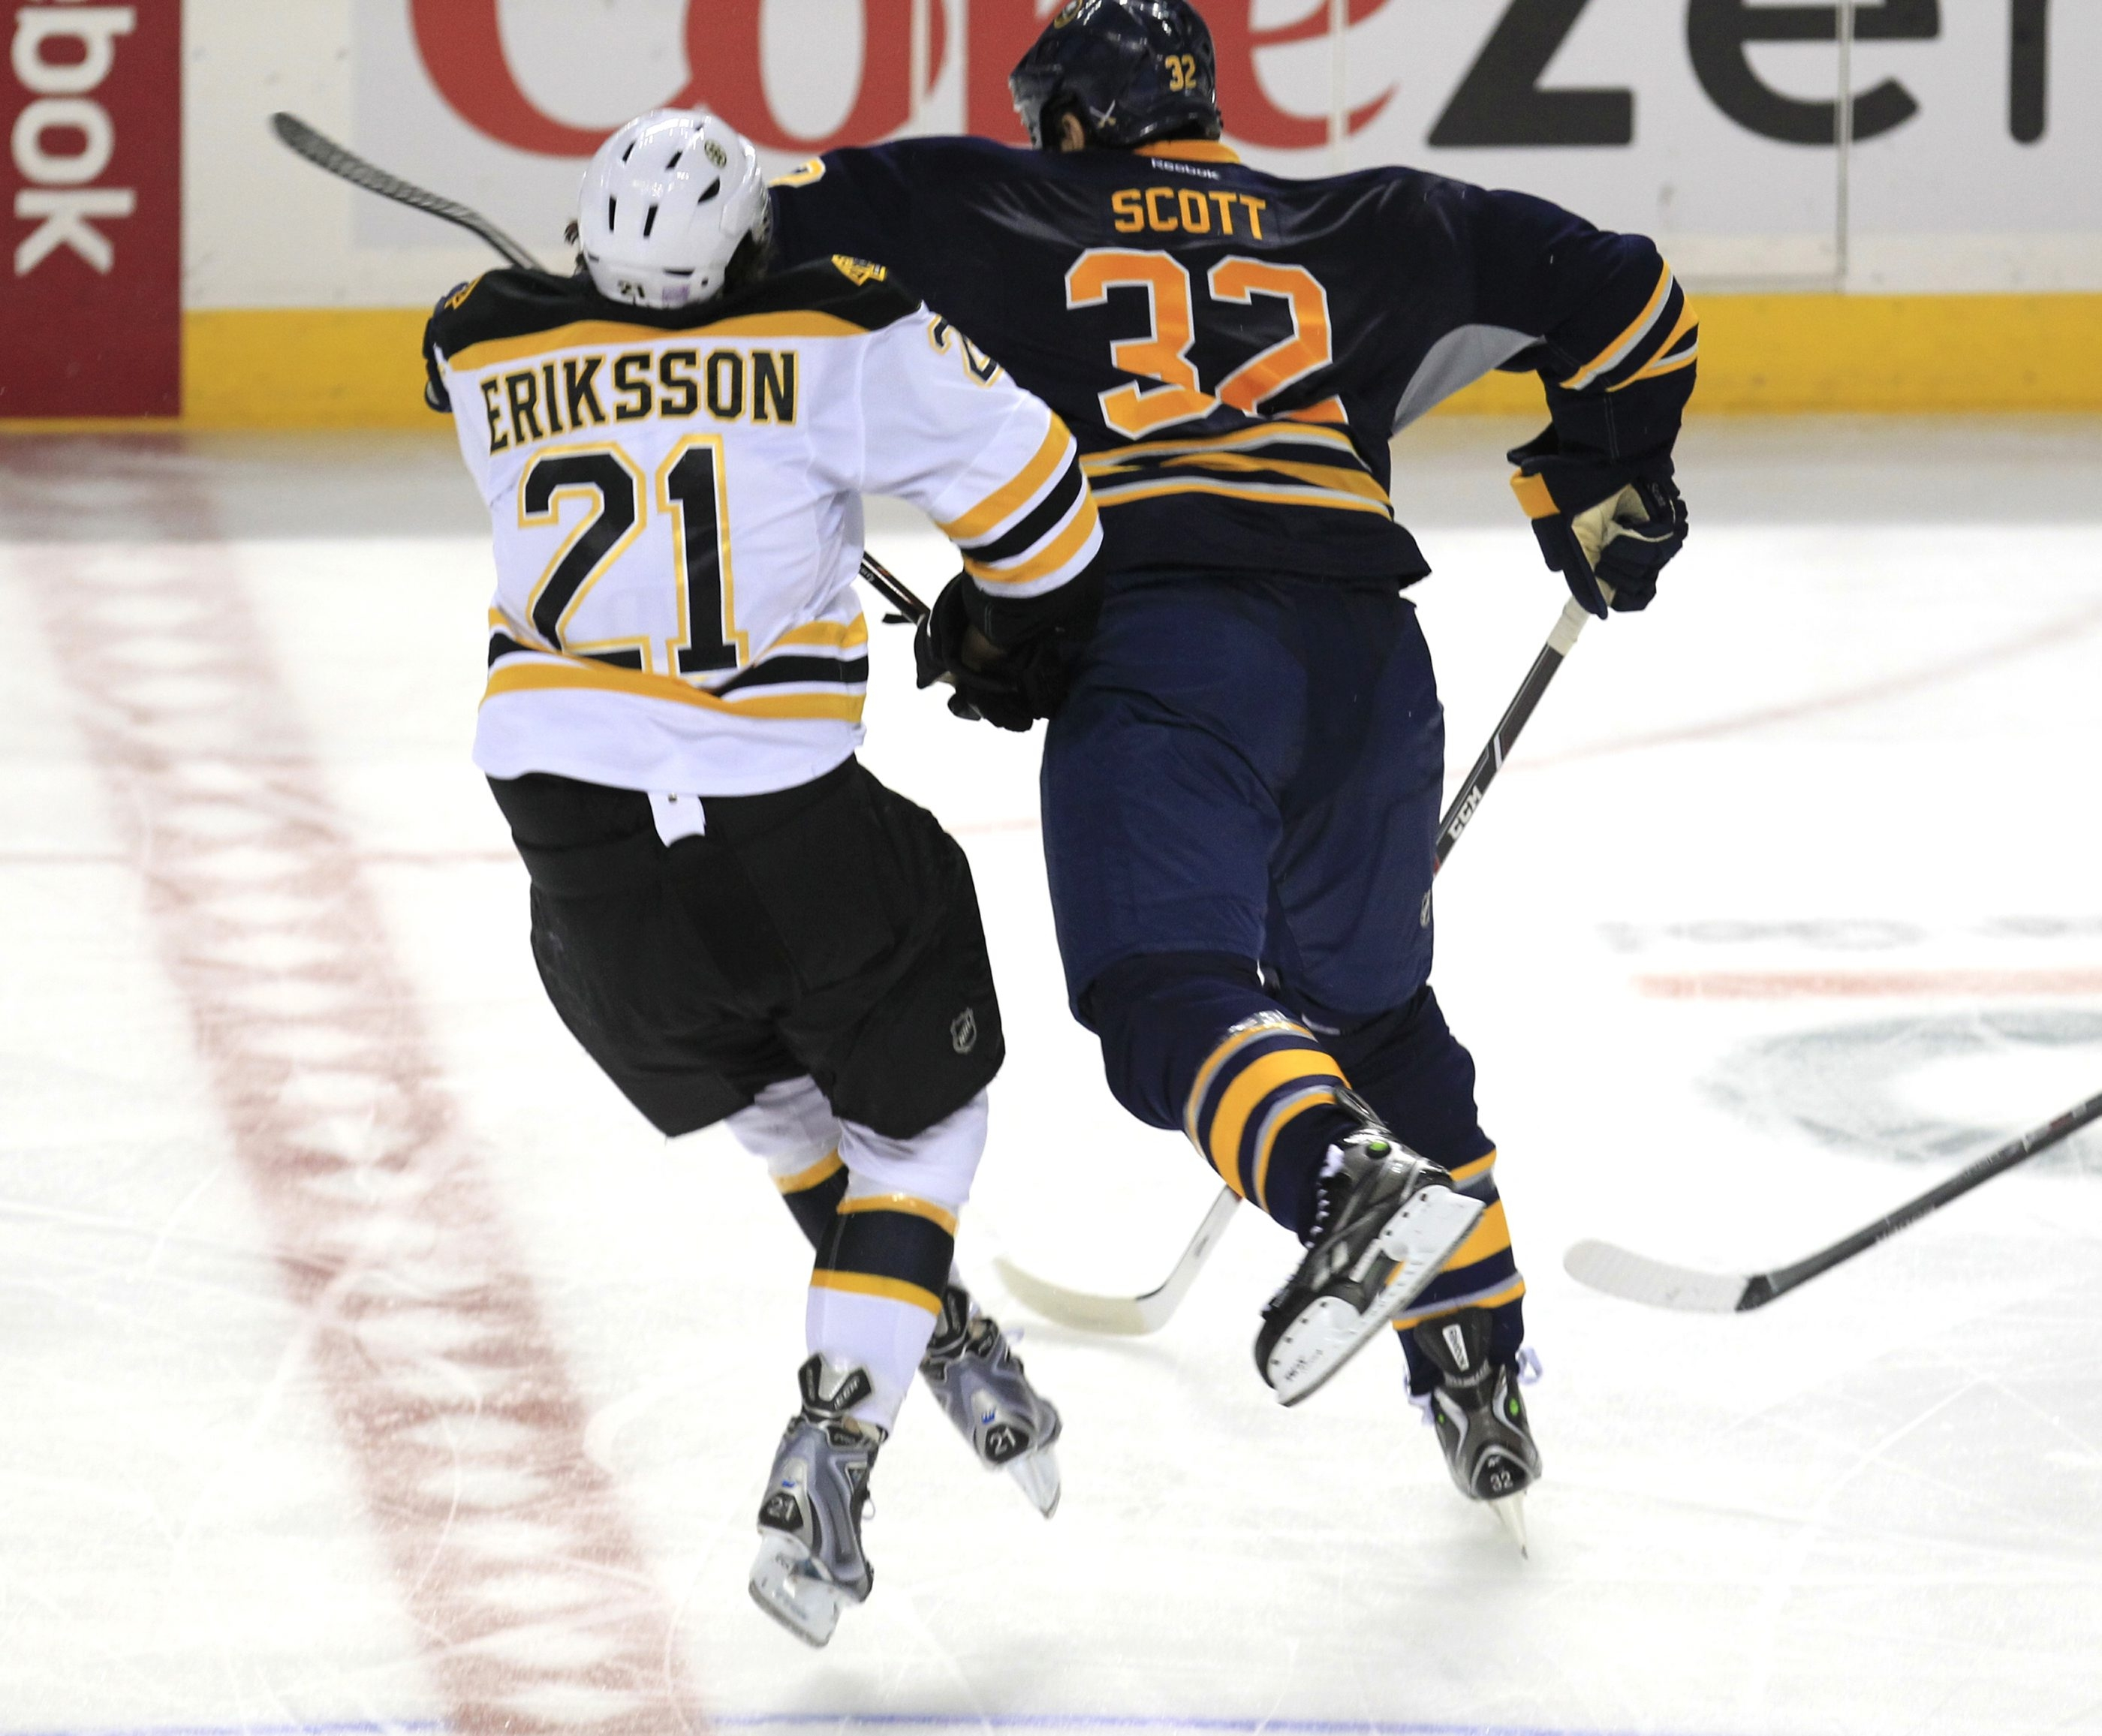 John Scott of the Sabres checks Boston's Loui Eriksson during their game at First Niagara Center on Oct. 23. Eriksson remains out with a concussion.